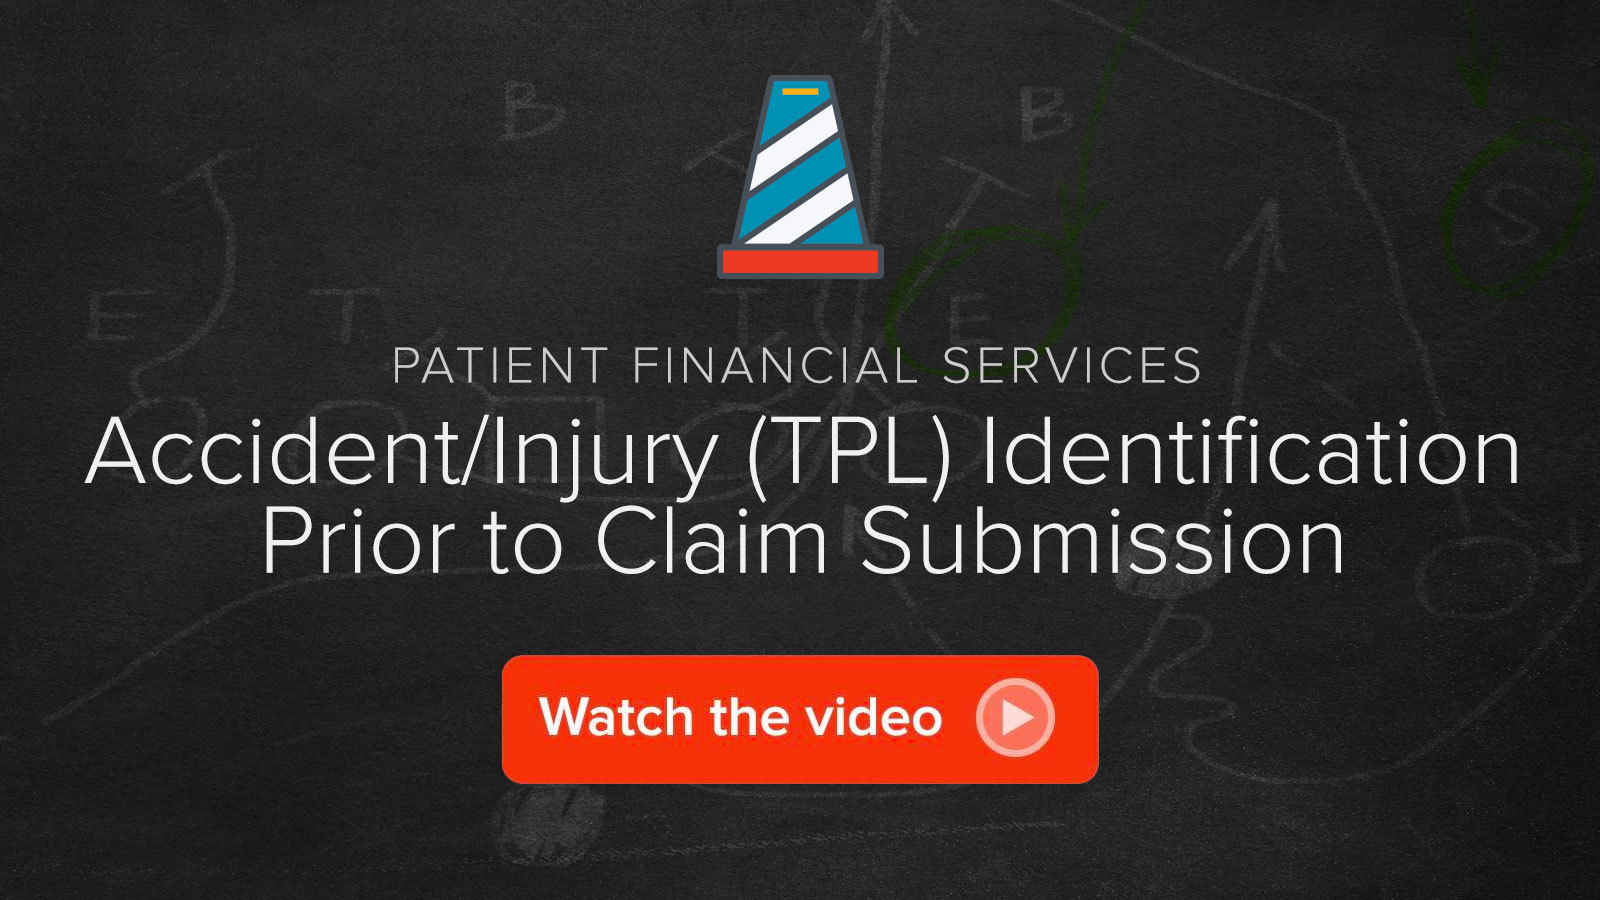 Watch the Accident/Injury (TPL) Identification Prior to Claim Submission video